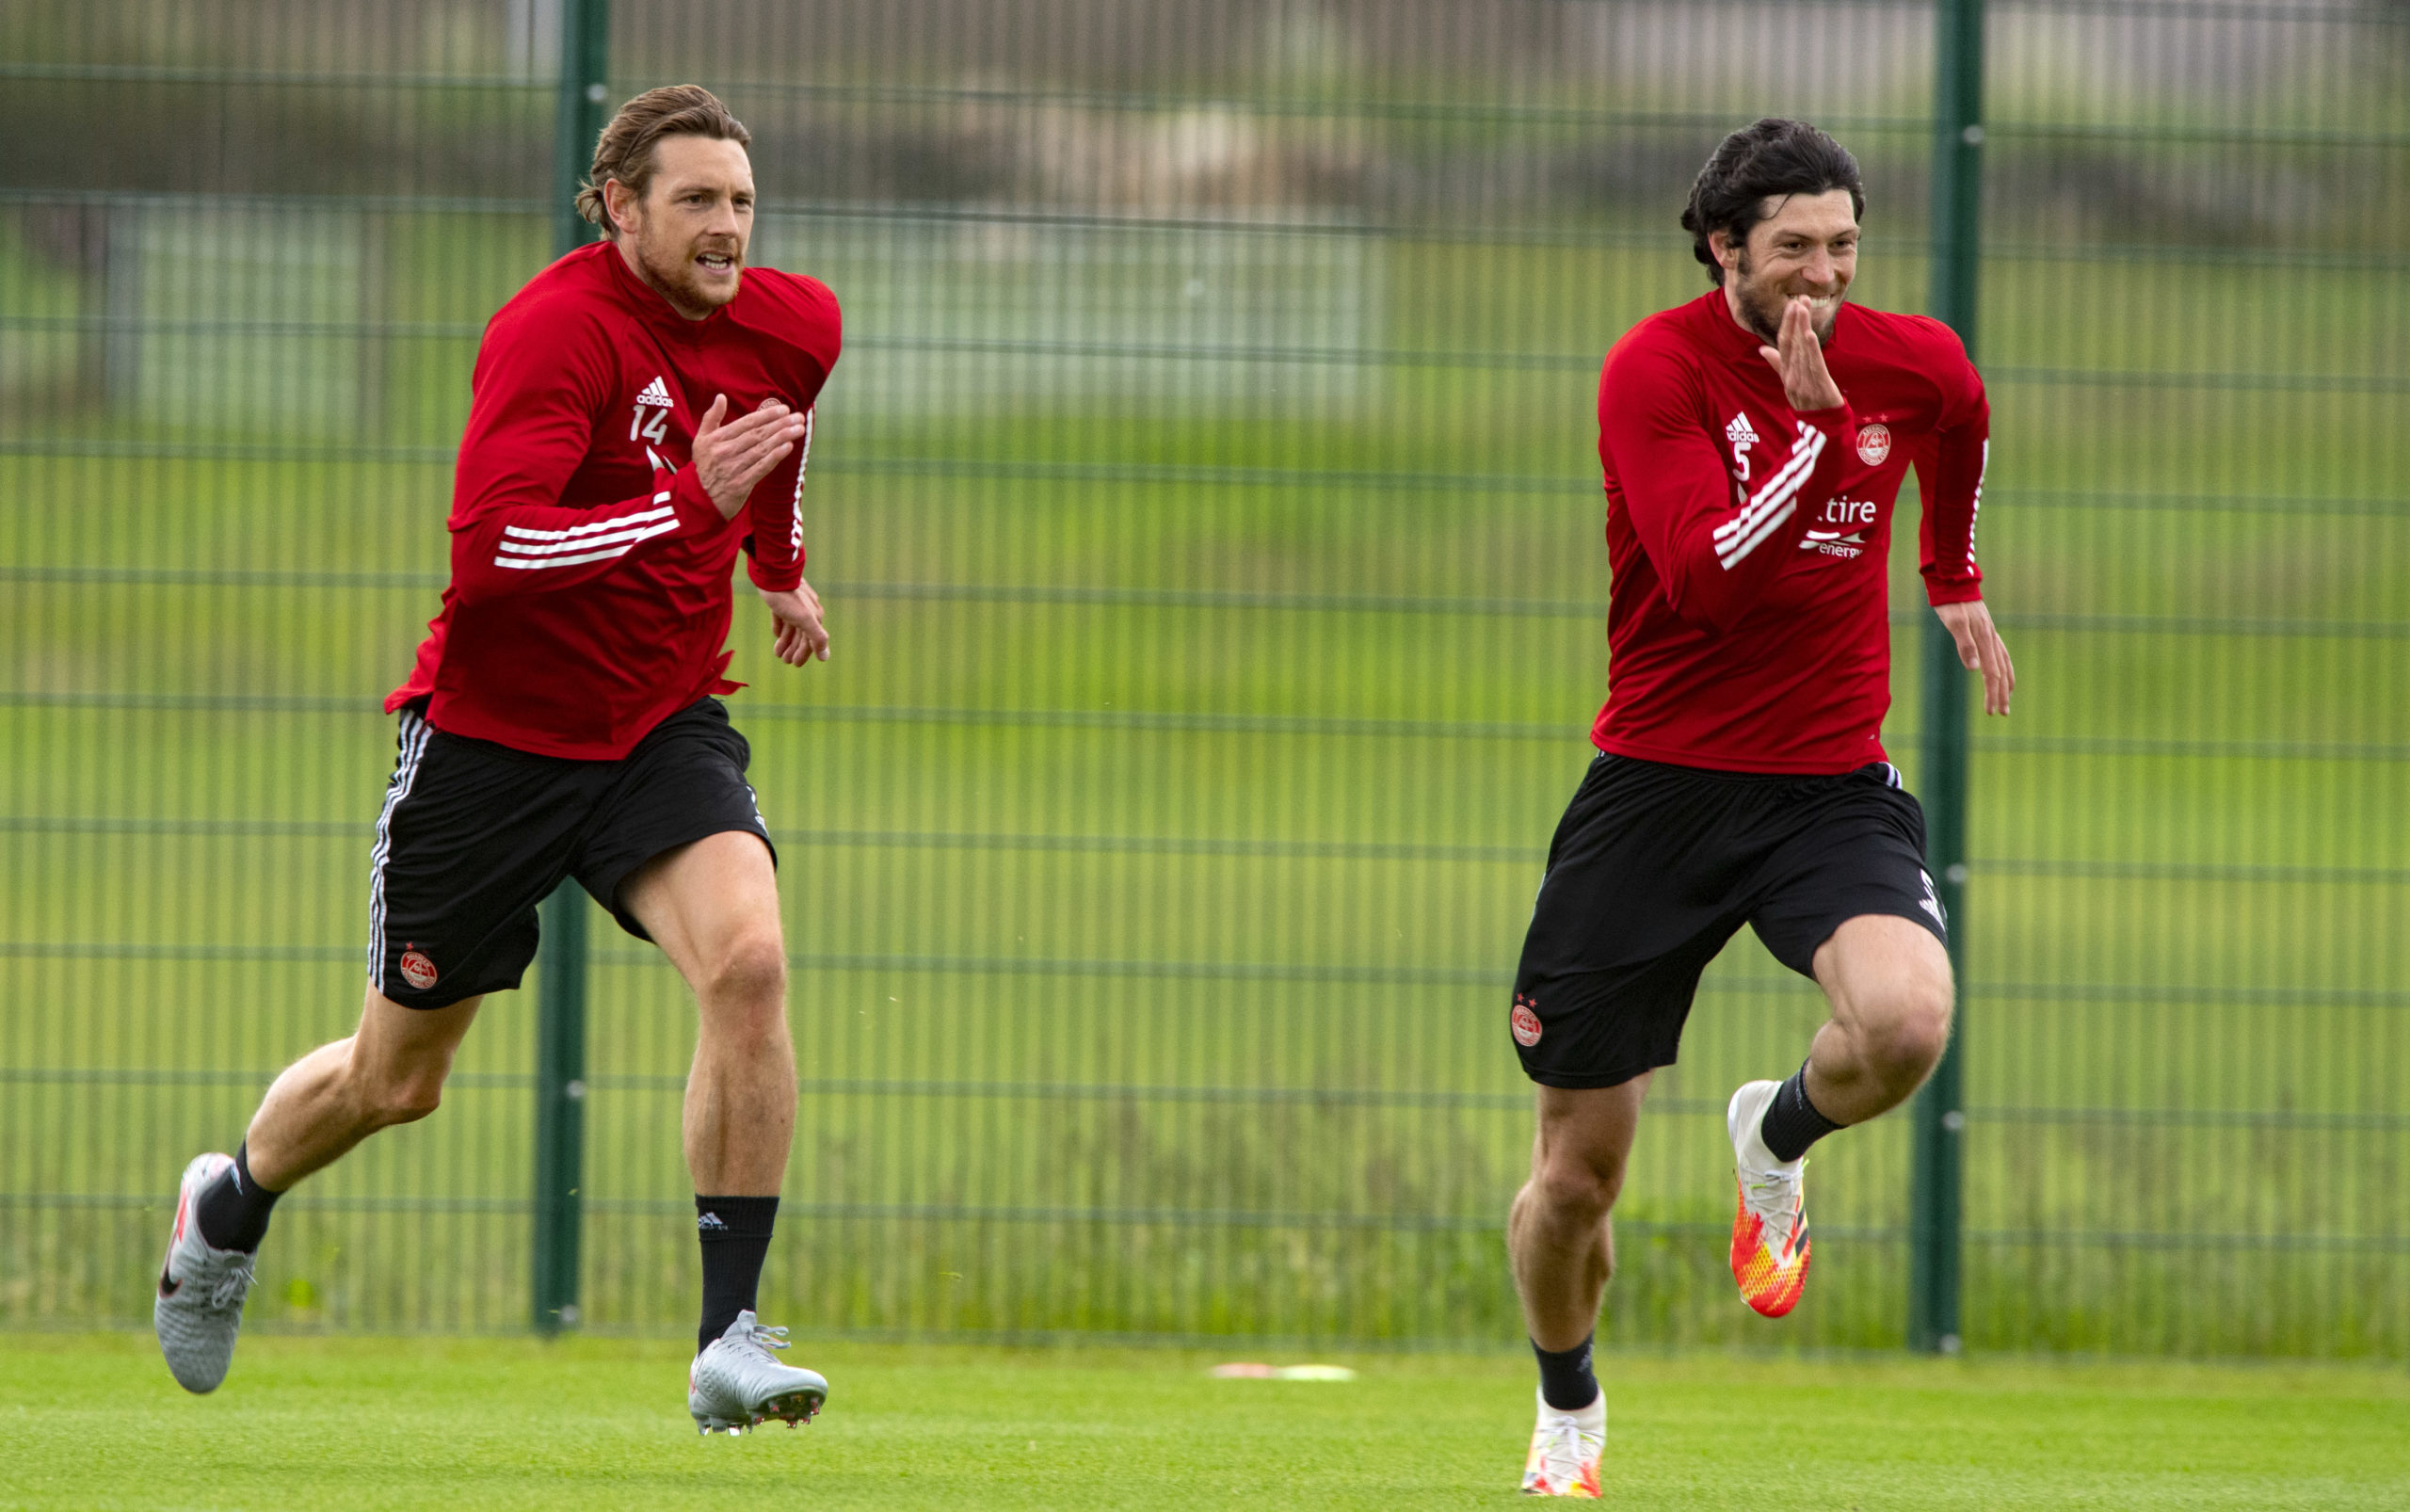 Centre-backs Ash Taylor, left, and Scott McKenna race in training.